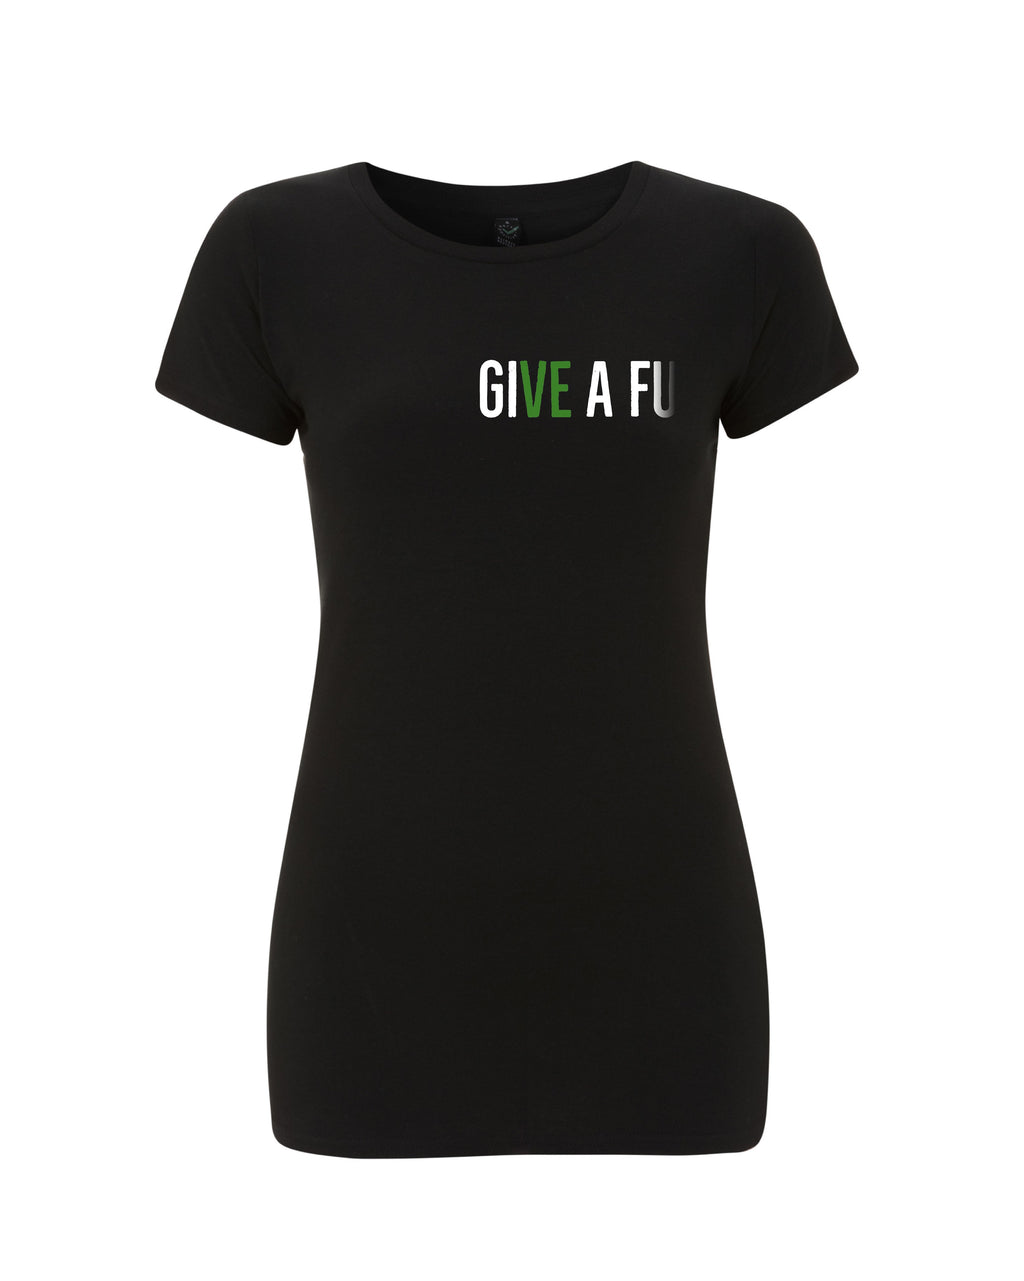 GIVE A FU Original Women's Slim Fit Organic Cotton T-shirt